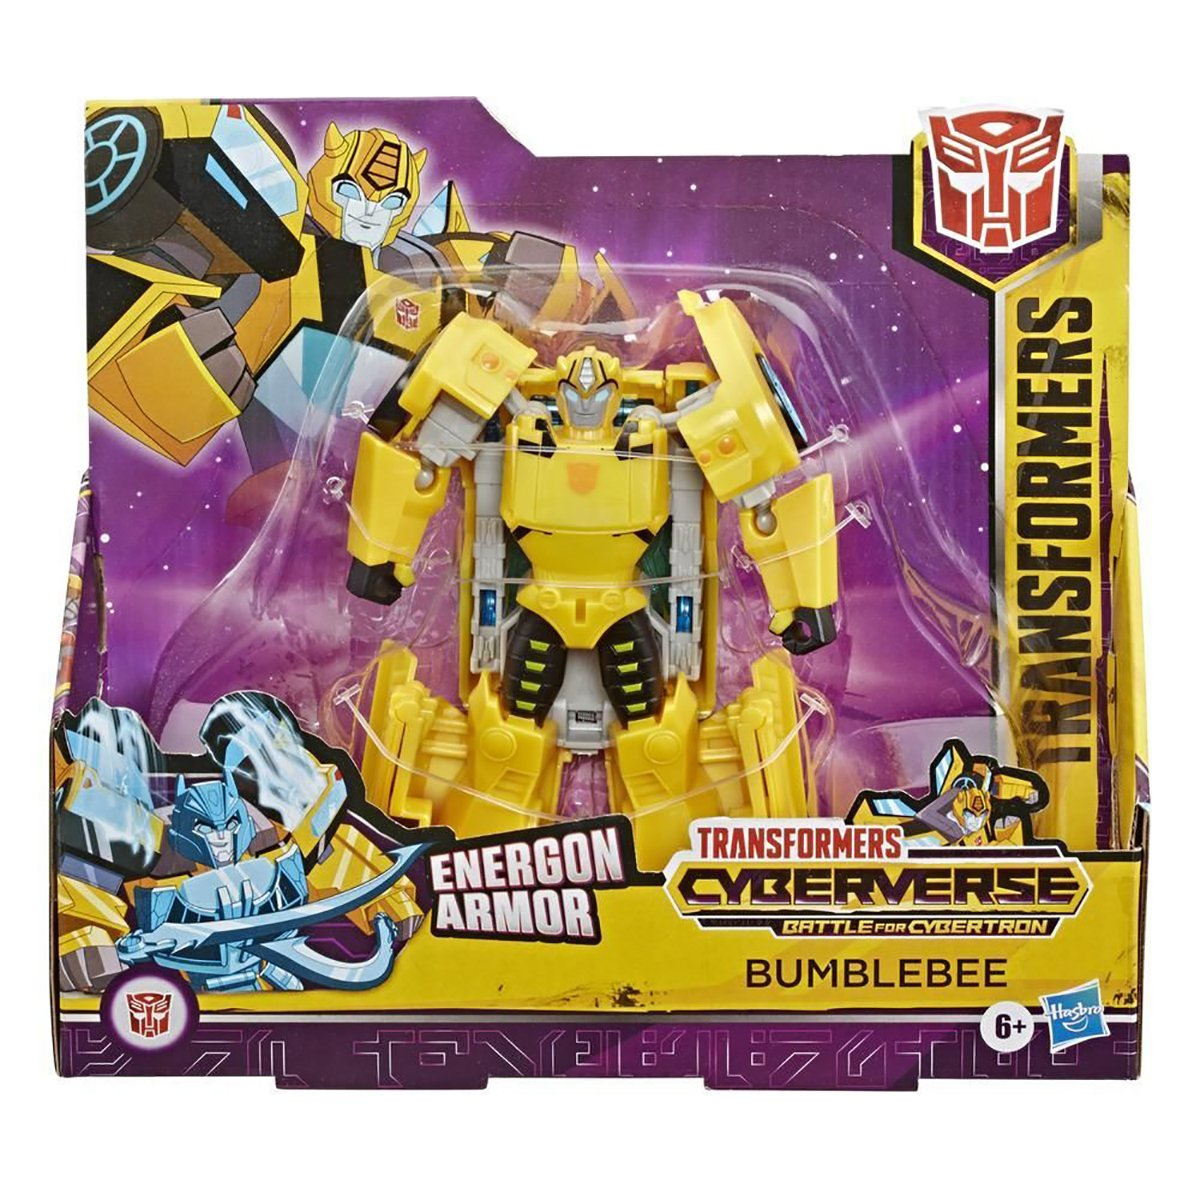 Figurina Transformers Cyberverse Action Attacker Ultra, Bumblebee E7106